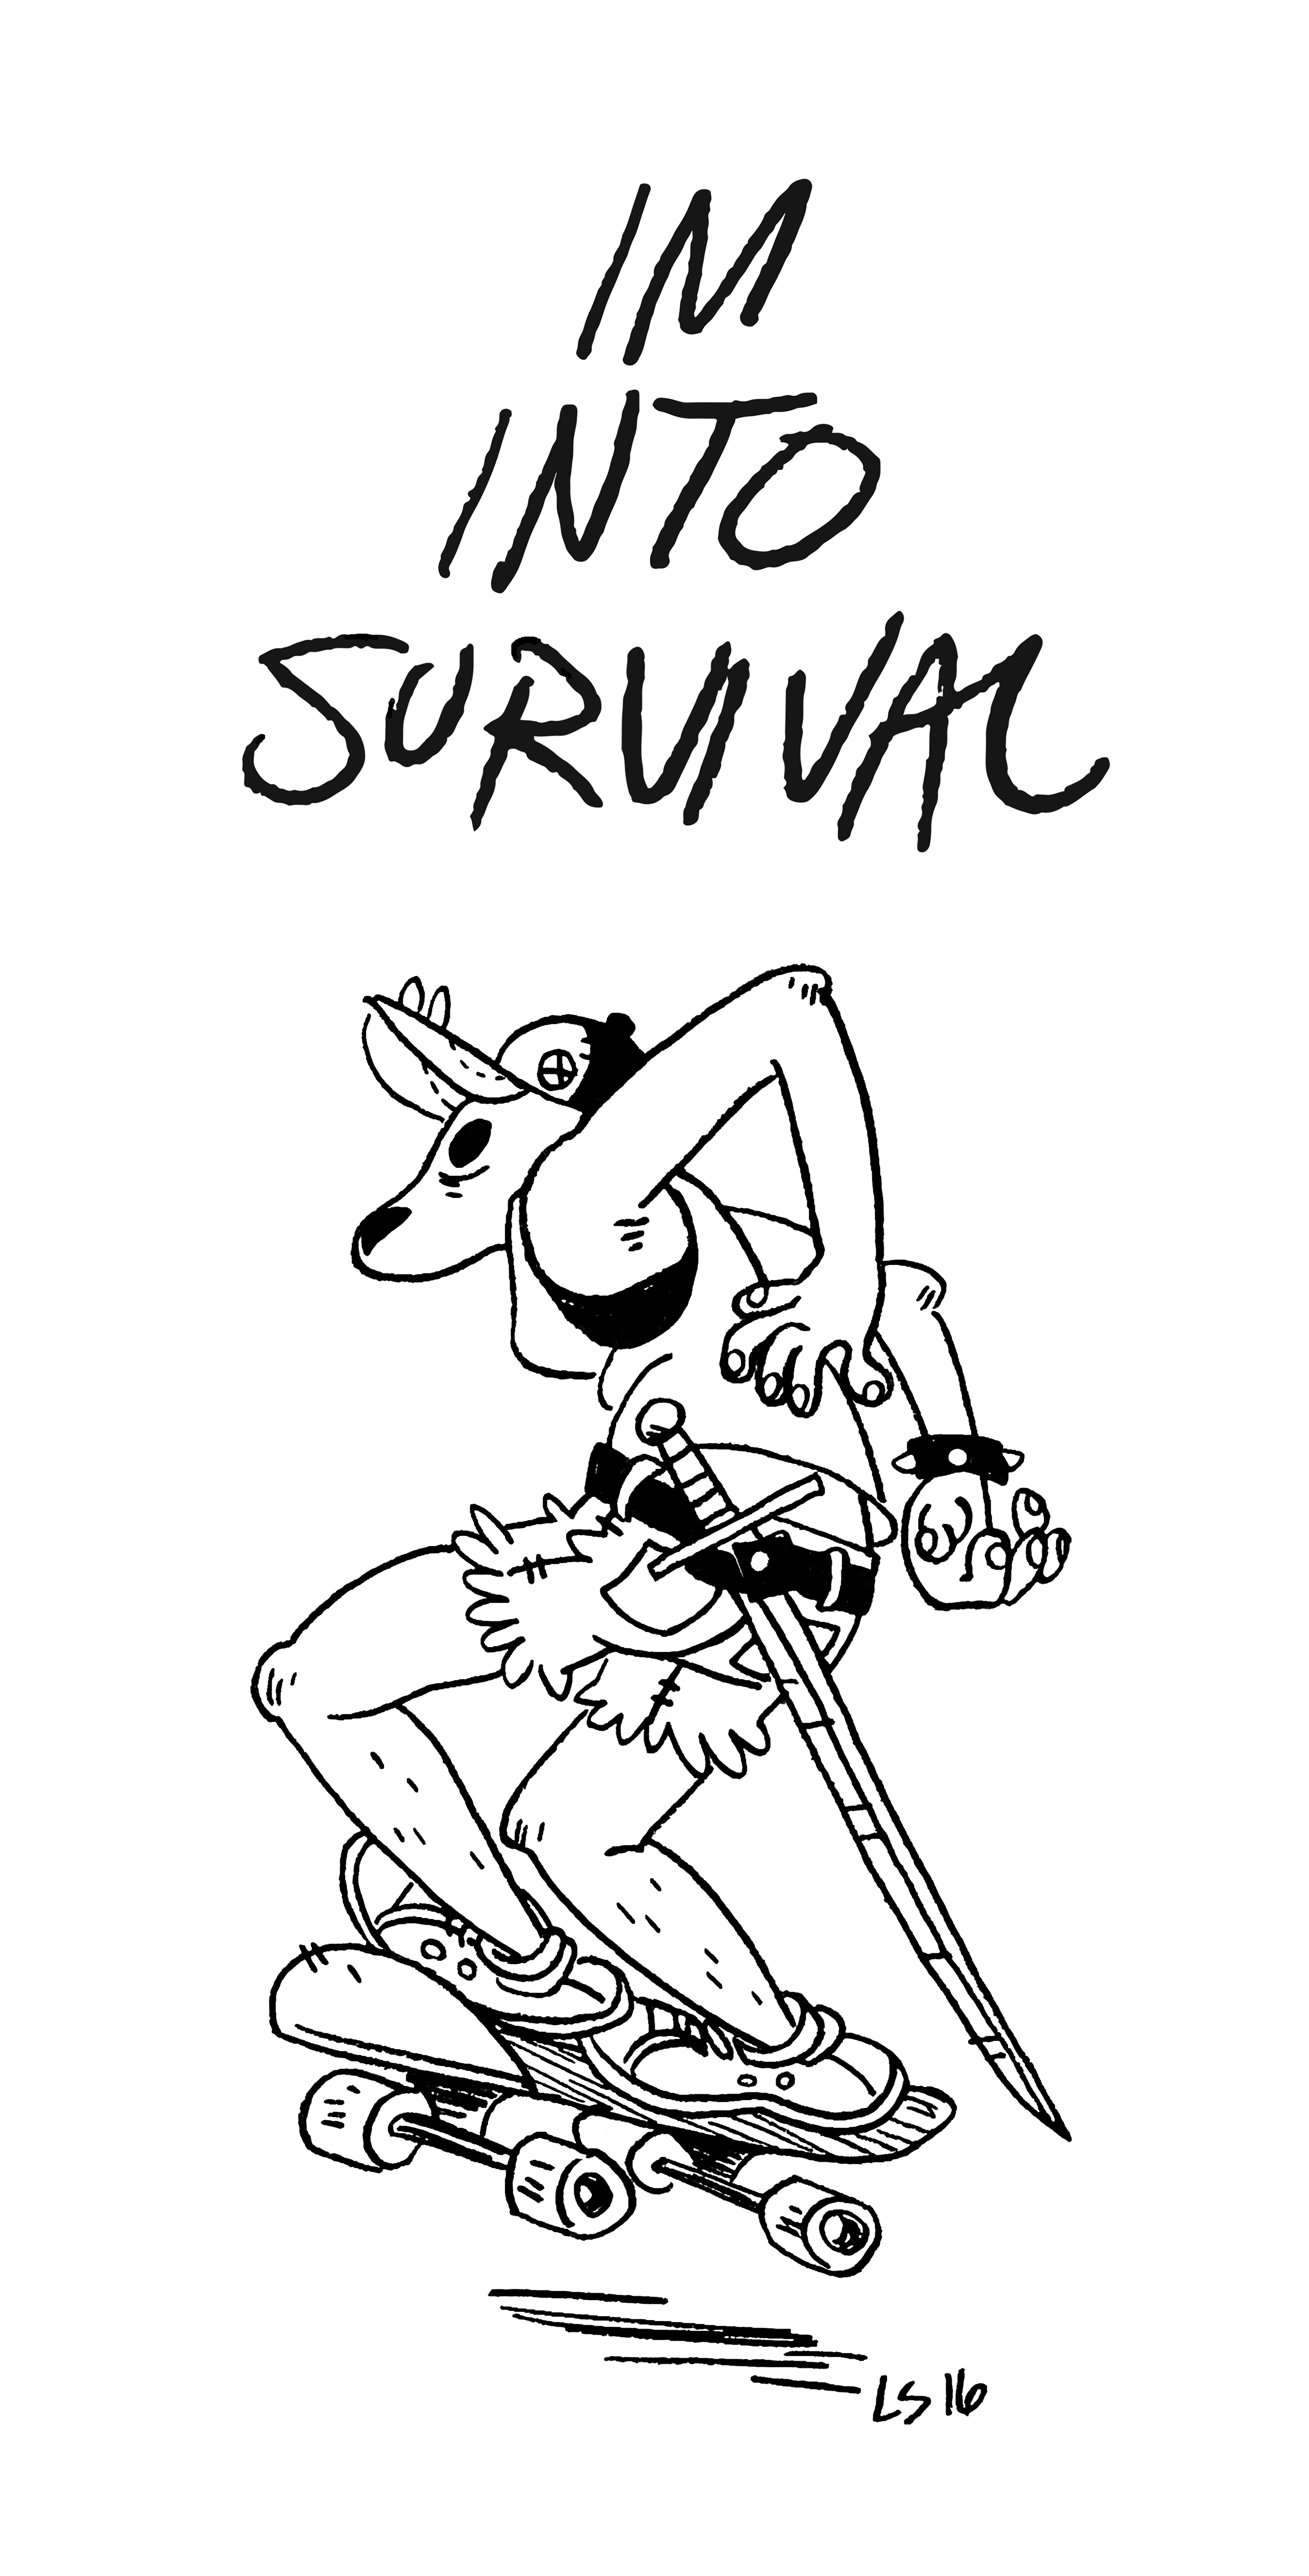 intosurvival.png